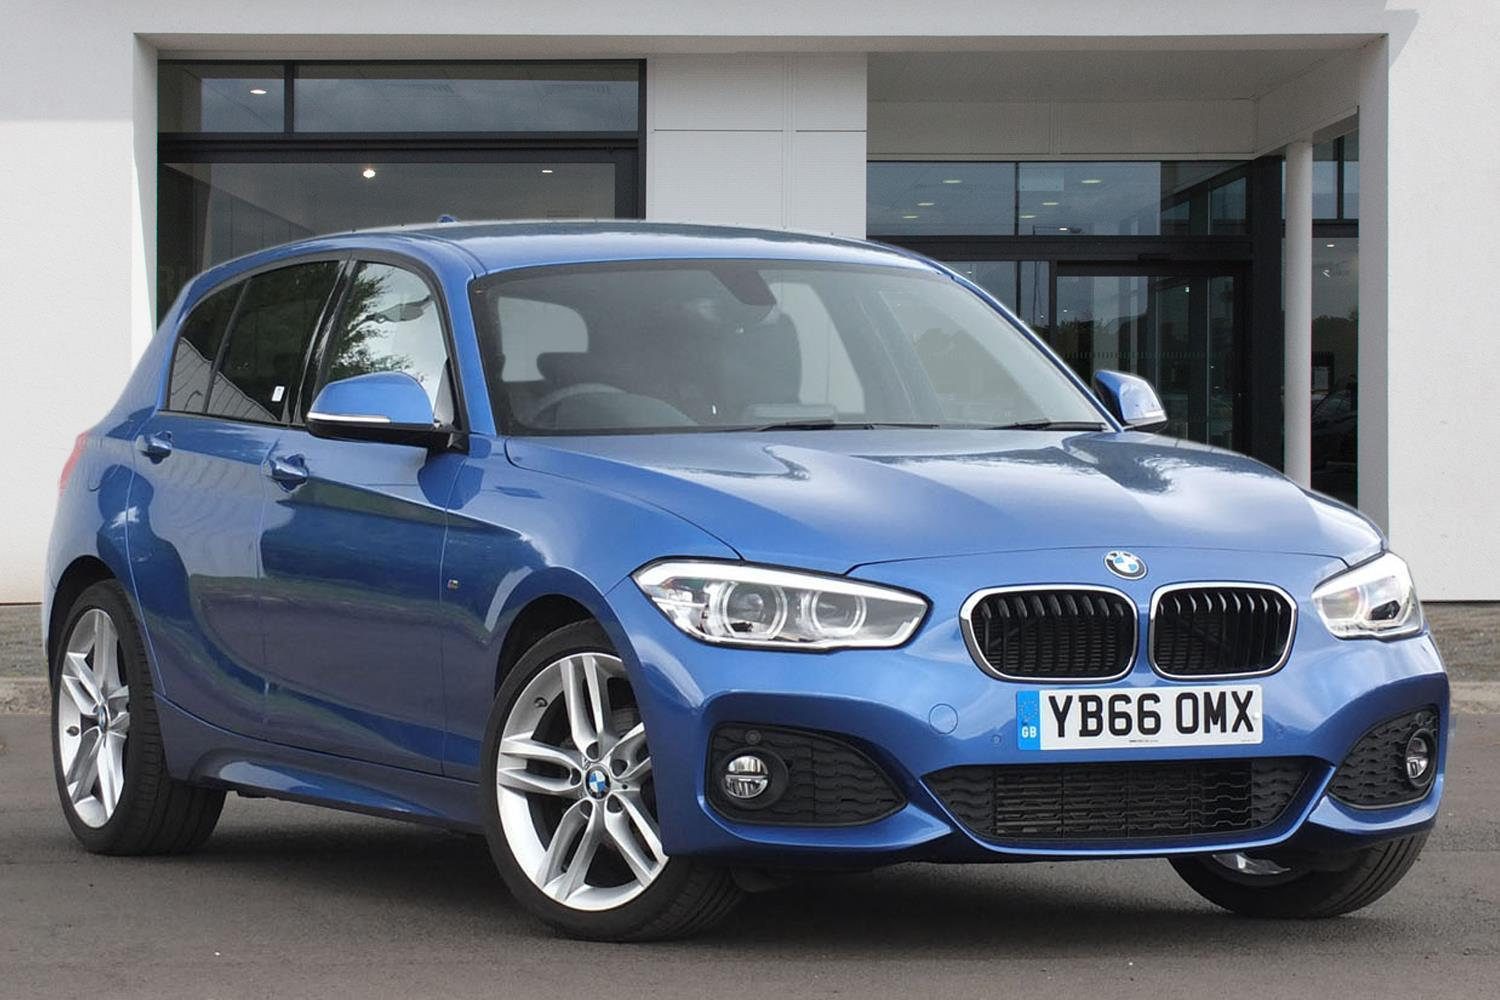 BMW 1 Series 5-door Sports Hatch YB66OMX - Image 5